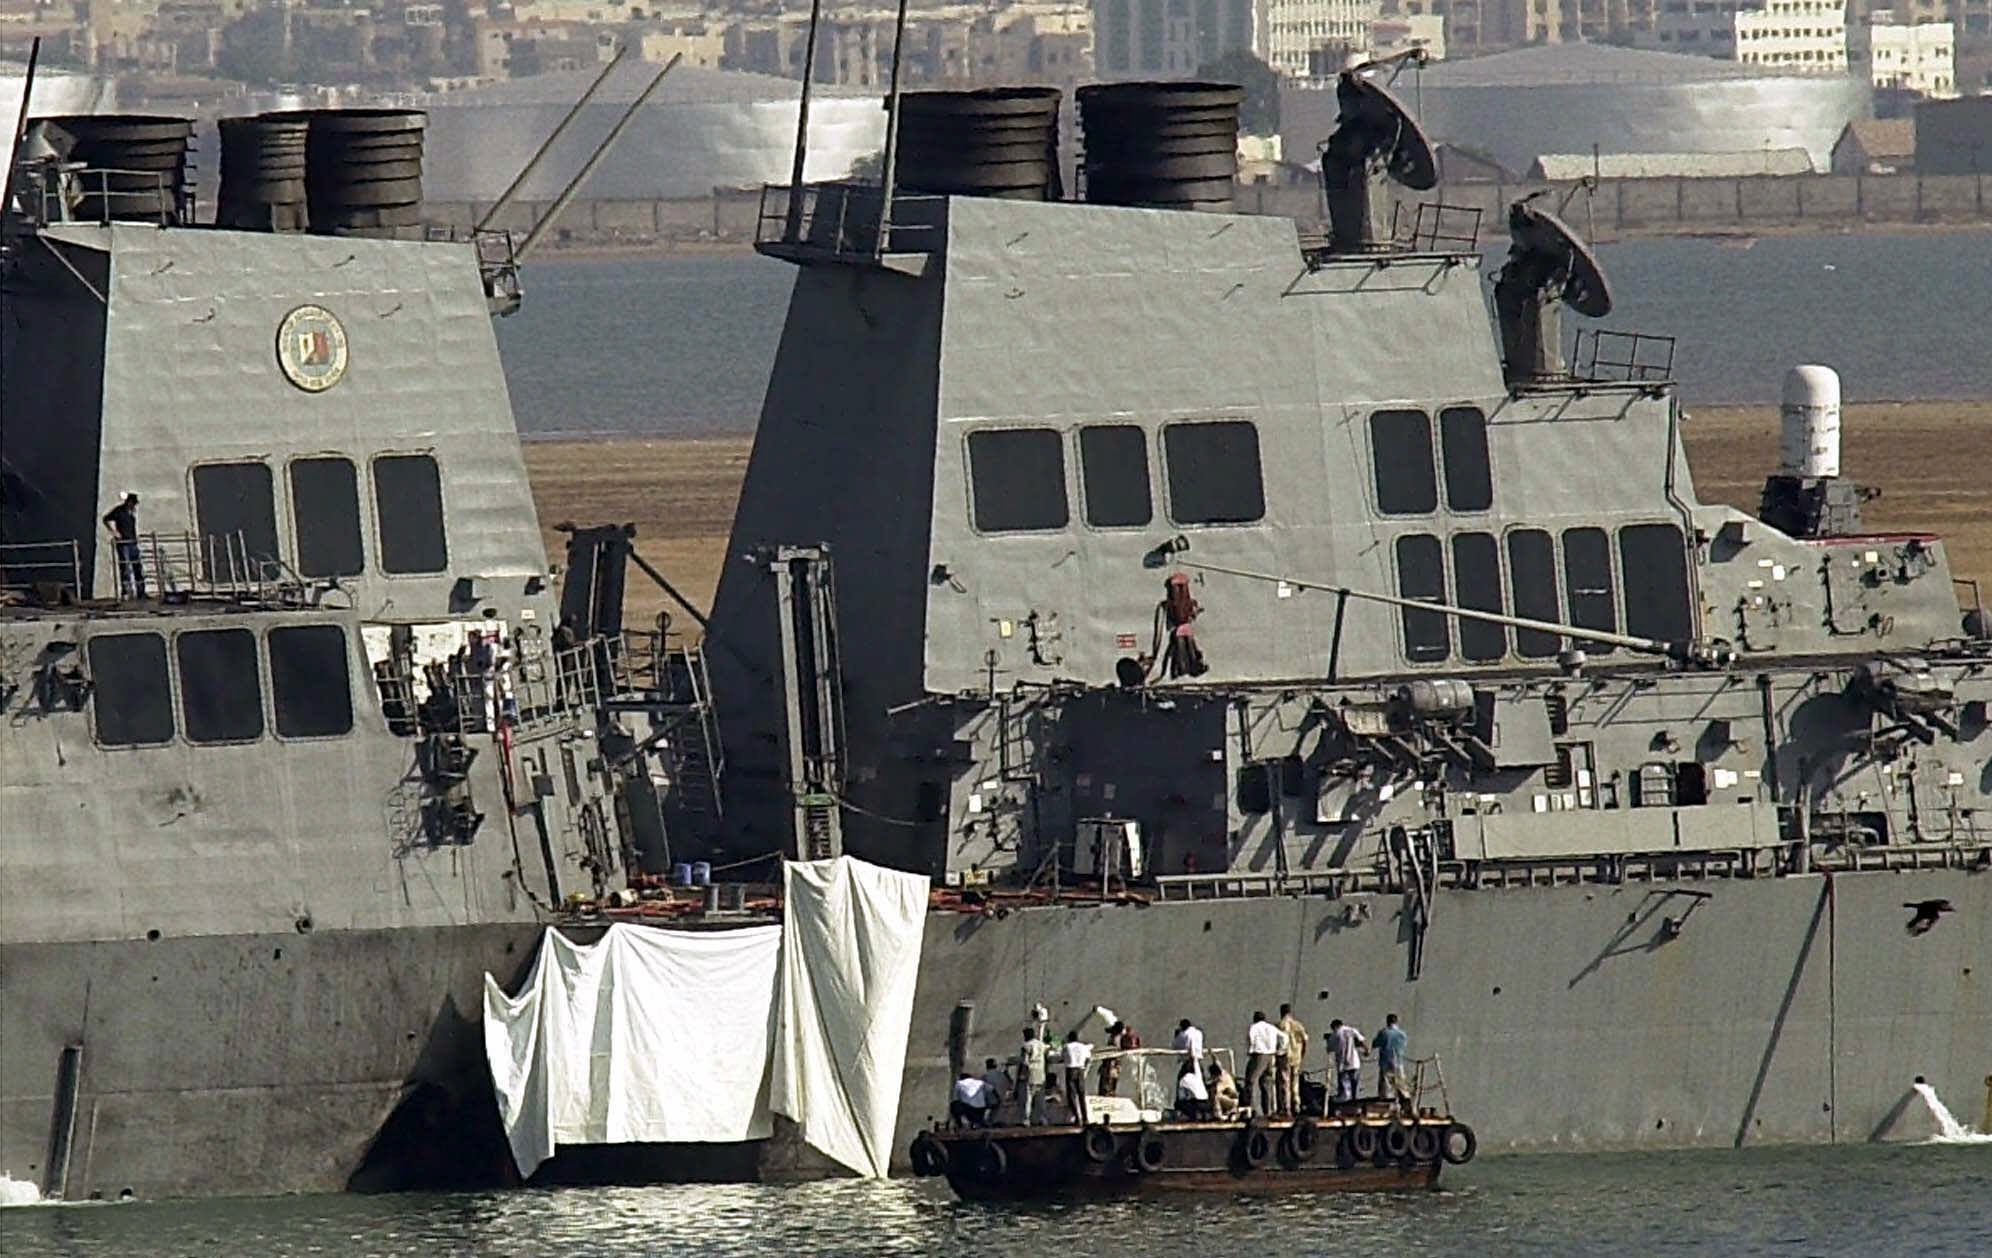 A powerful explosion Thursday ripped a hole in a U.S Navy destroyer in the Yemeni port of Aden killing 17 sailors and injuring some 30 others.(AP